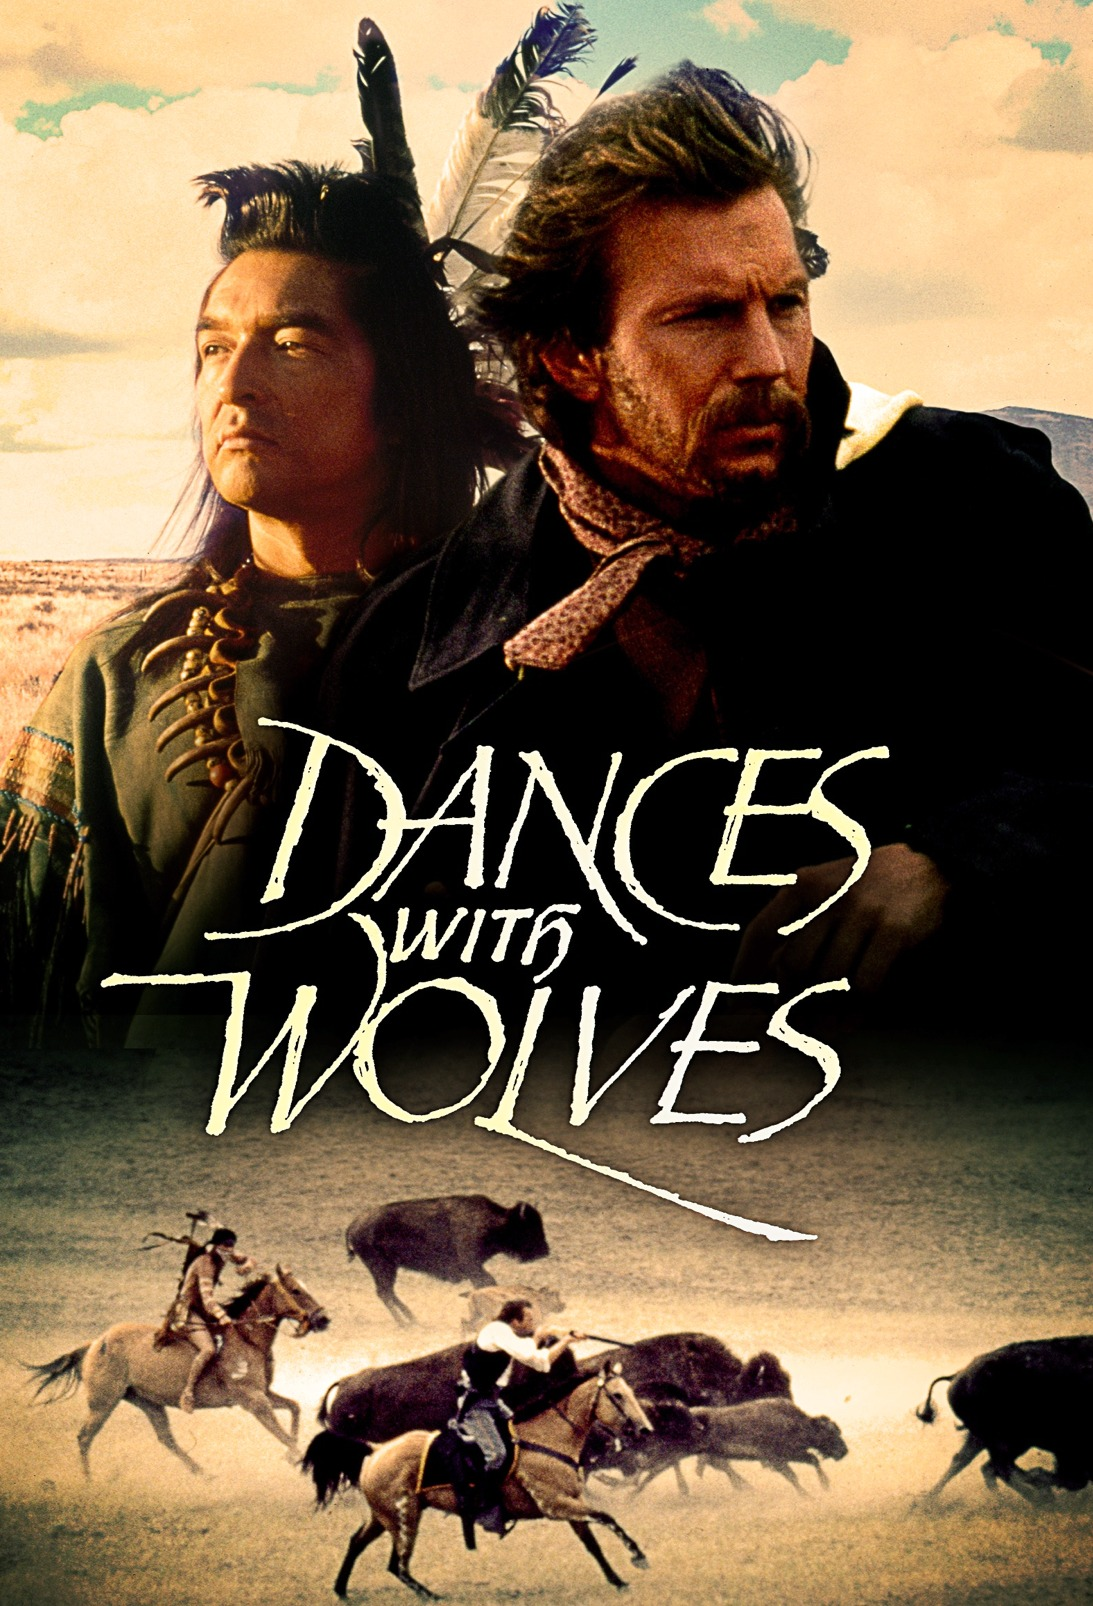 Image result for dances with wolves poster